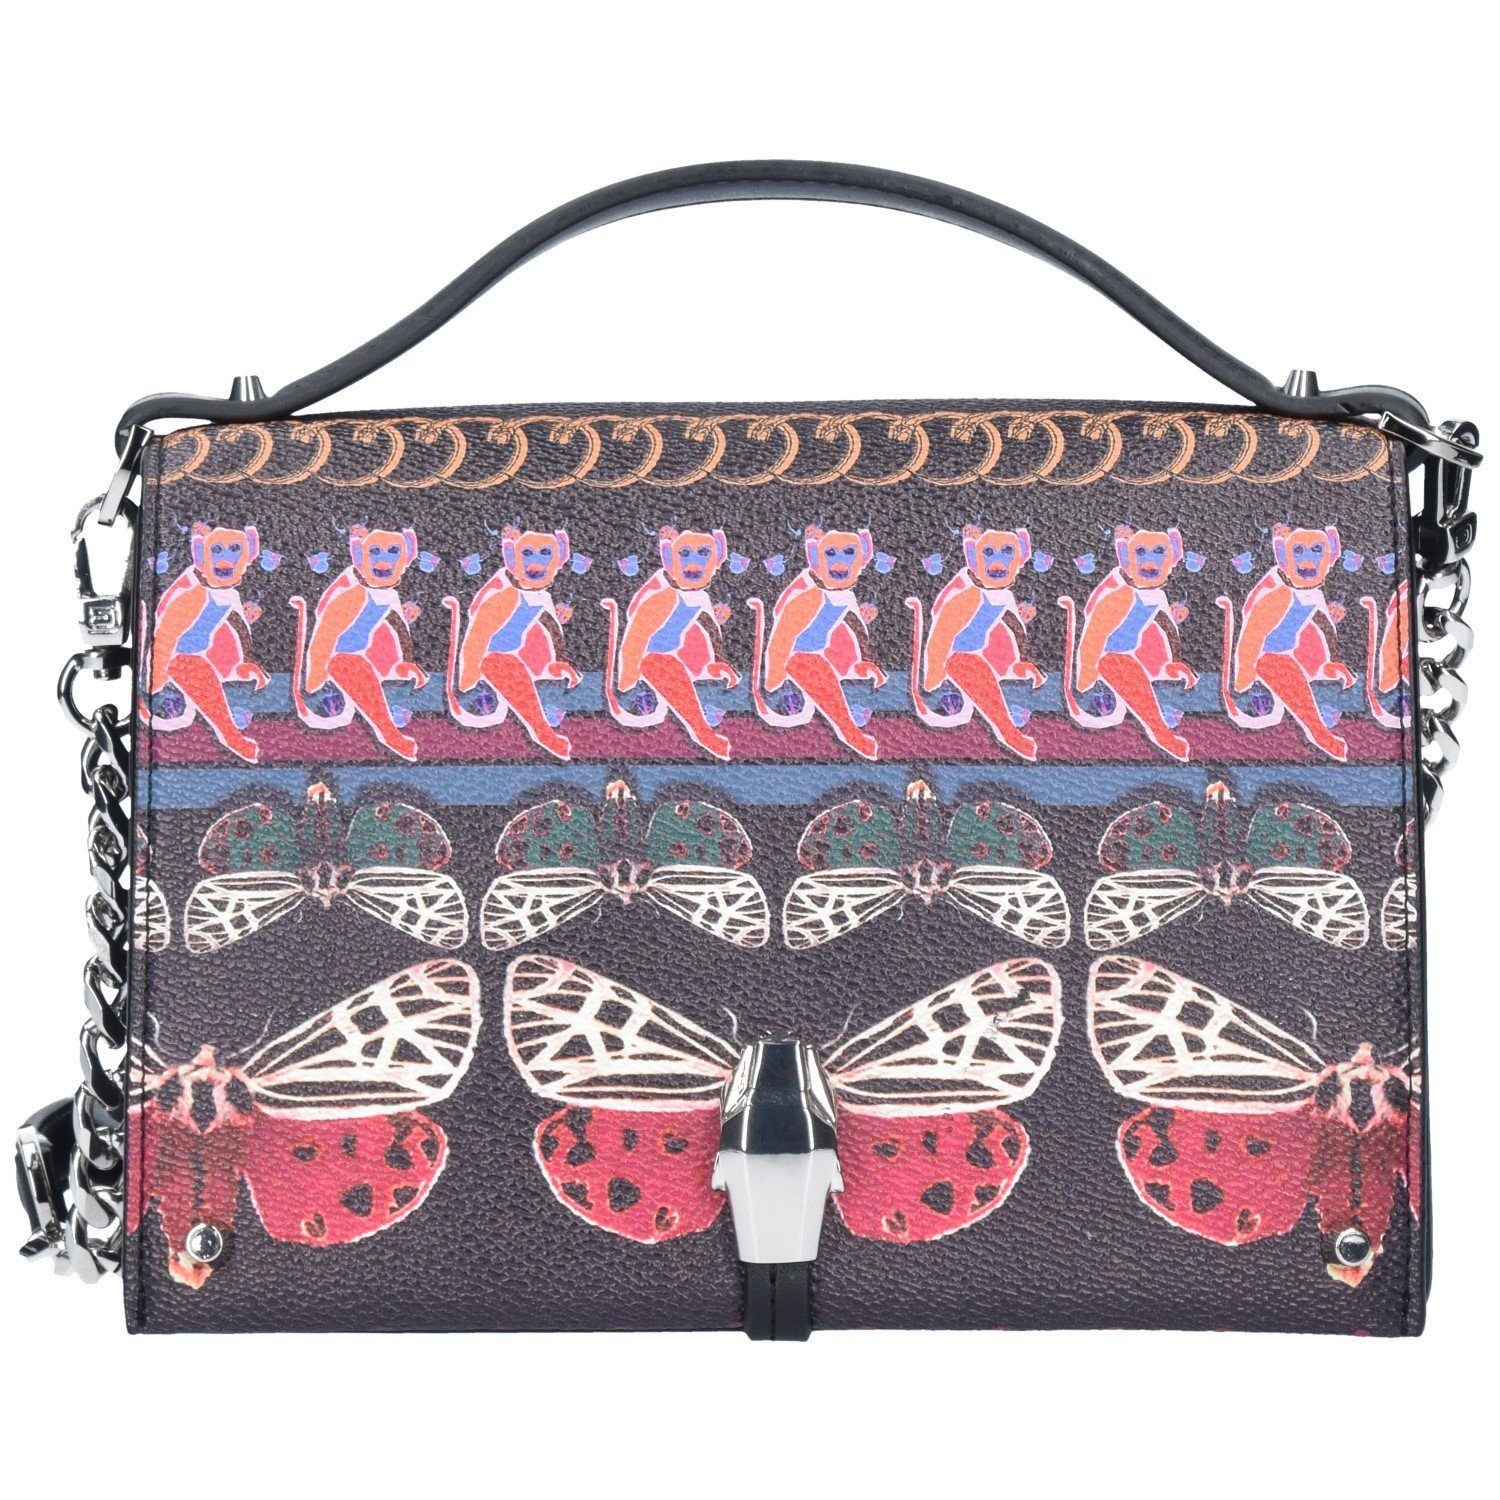 Roberto Cavalli Class Crazy Print Boho Dream Mini Bag Umhängetasche 18 cm